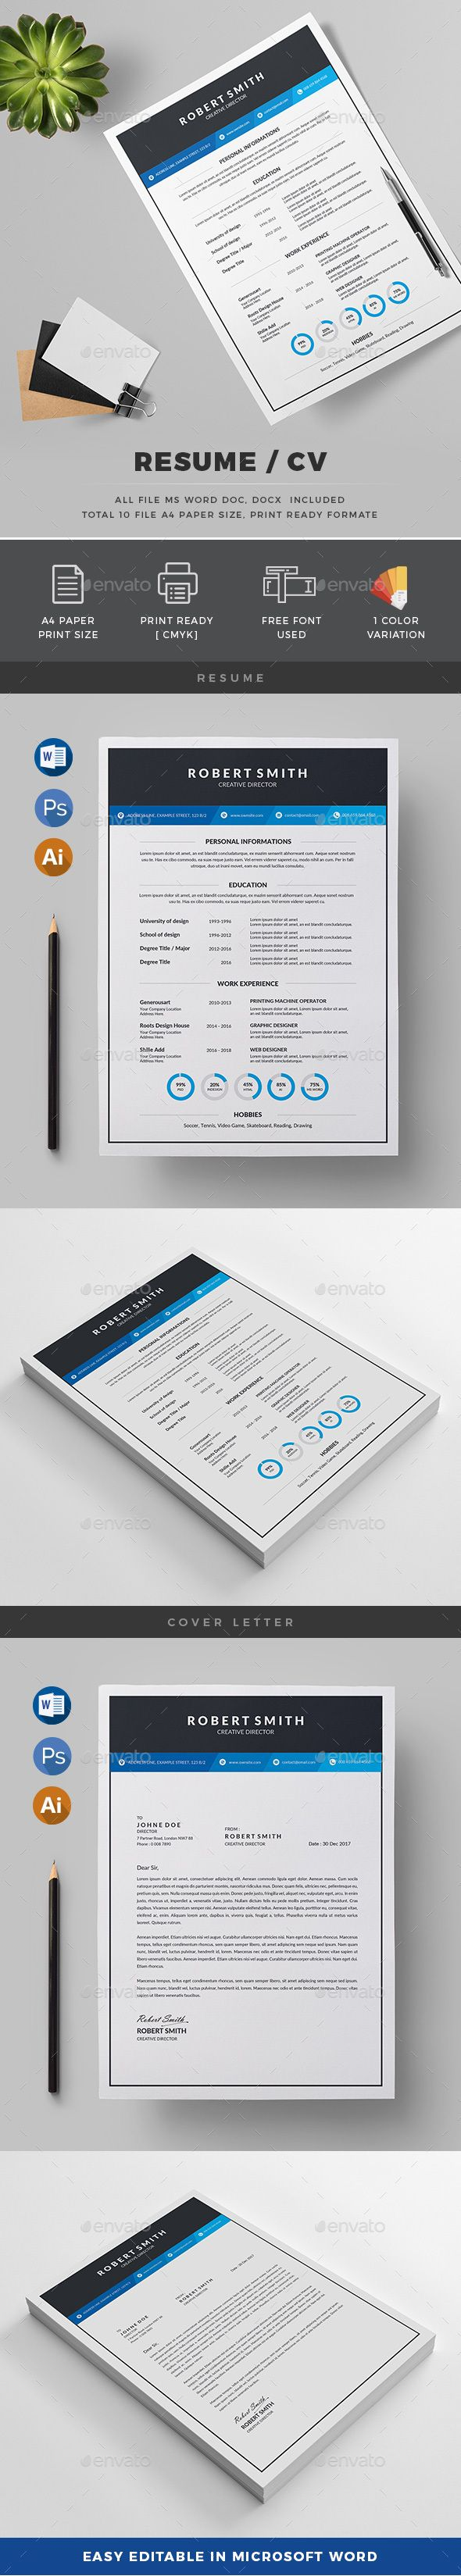 Resume | Template, Business card maker and Business cards